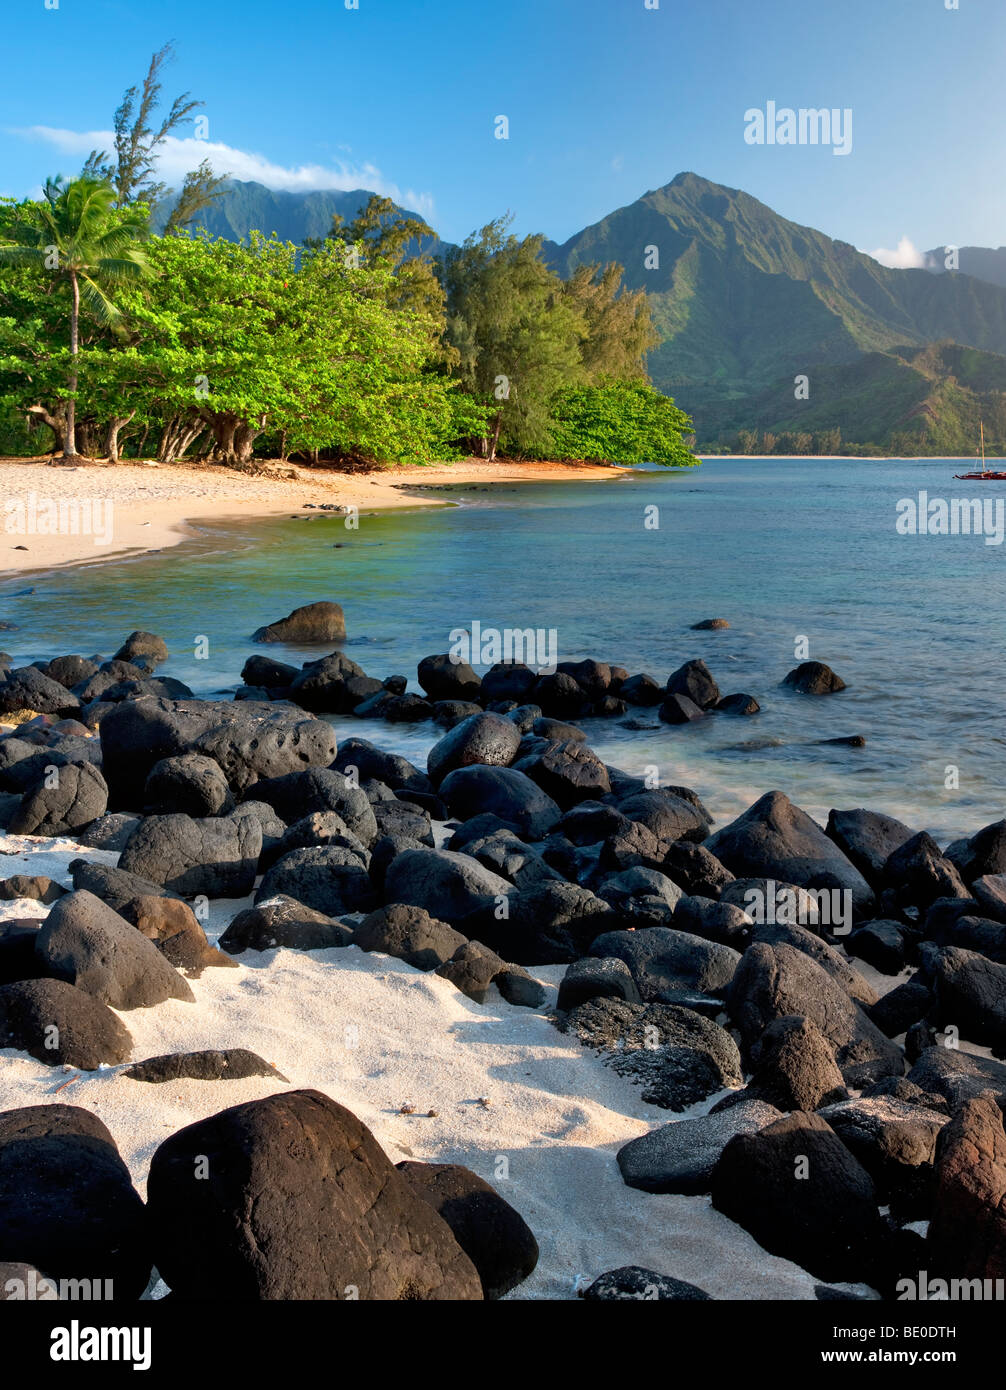 Hanalei Bay with white sand and black volcanic rocks. Kauai, Hawaii. - Stock Image